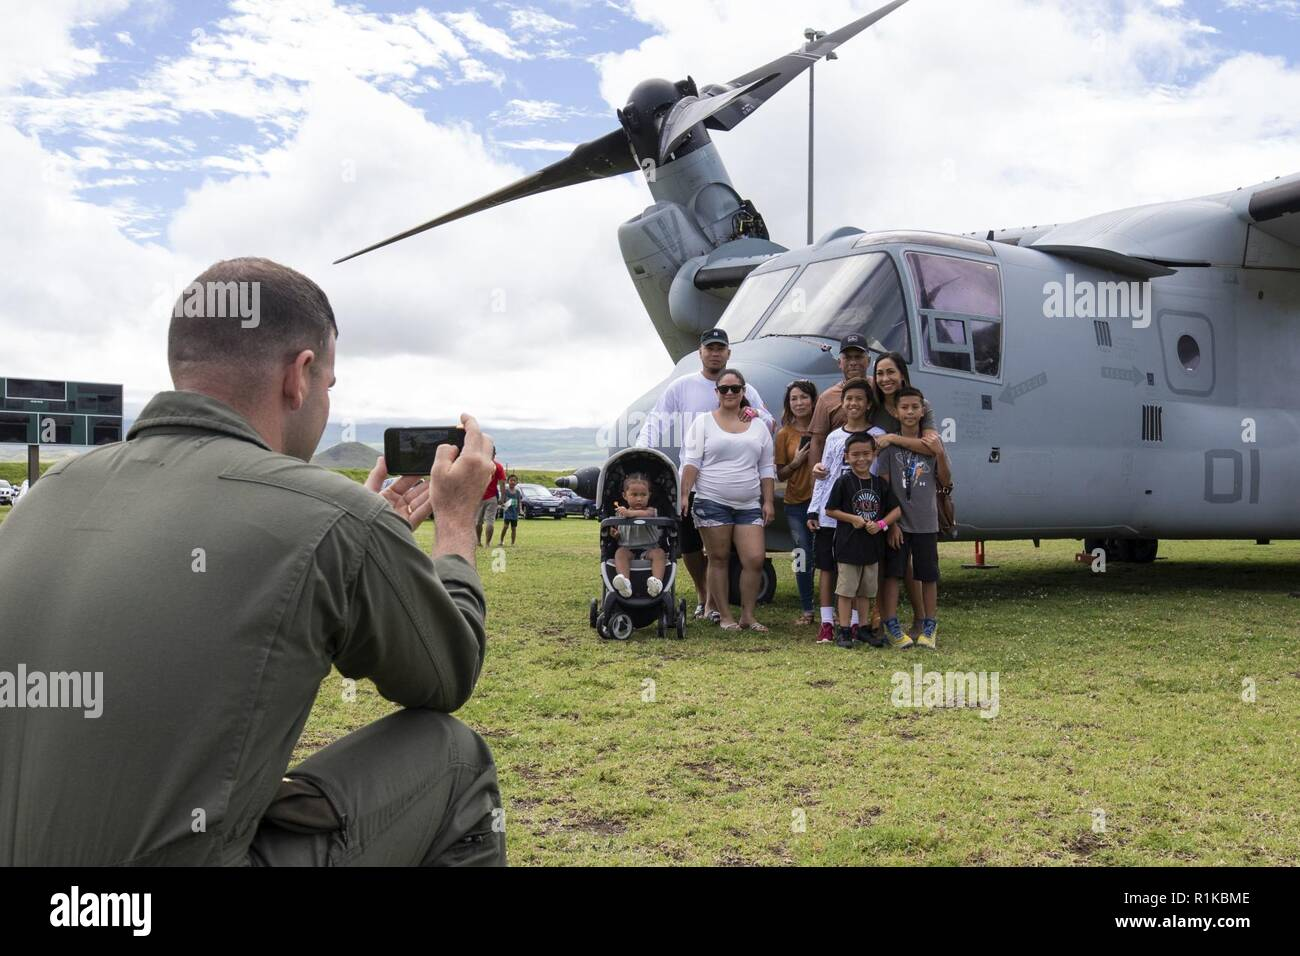 U.S. Marine Corps Maj. Christopher Ulcak, an aircraft commander with Marine Medium Tiltrotor Squadron (VMM) 363, takes a photo of local community members at the Waimea District Park in front of an MV-22B Osprey aircraft, Oct. 13, 2018. VMM-363 flew one of their aircraft from Marine Corps Base Hawaii on Oahu to the Waimea Fall Festival, providing a static display and subject matter experts for a first-hand experience to the festival's attendants. The squadron arrived to Hawaii earlier this year increasing the combat capability and crisis response within the Indo-Pacific region. Stock Photo